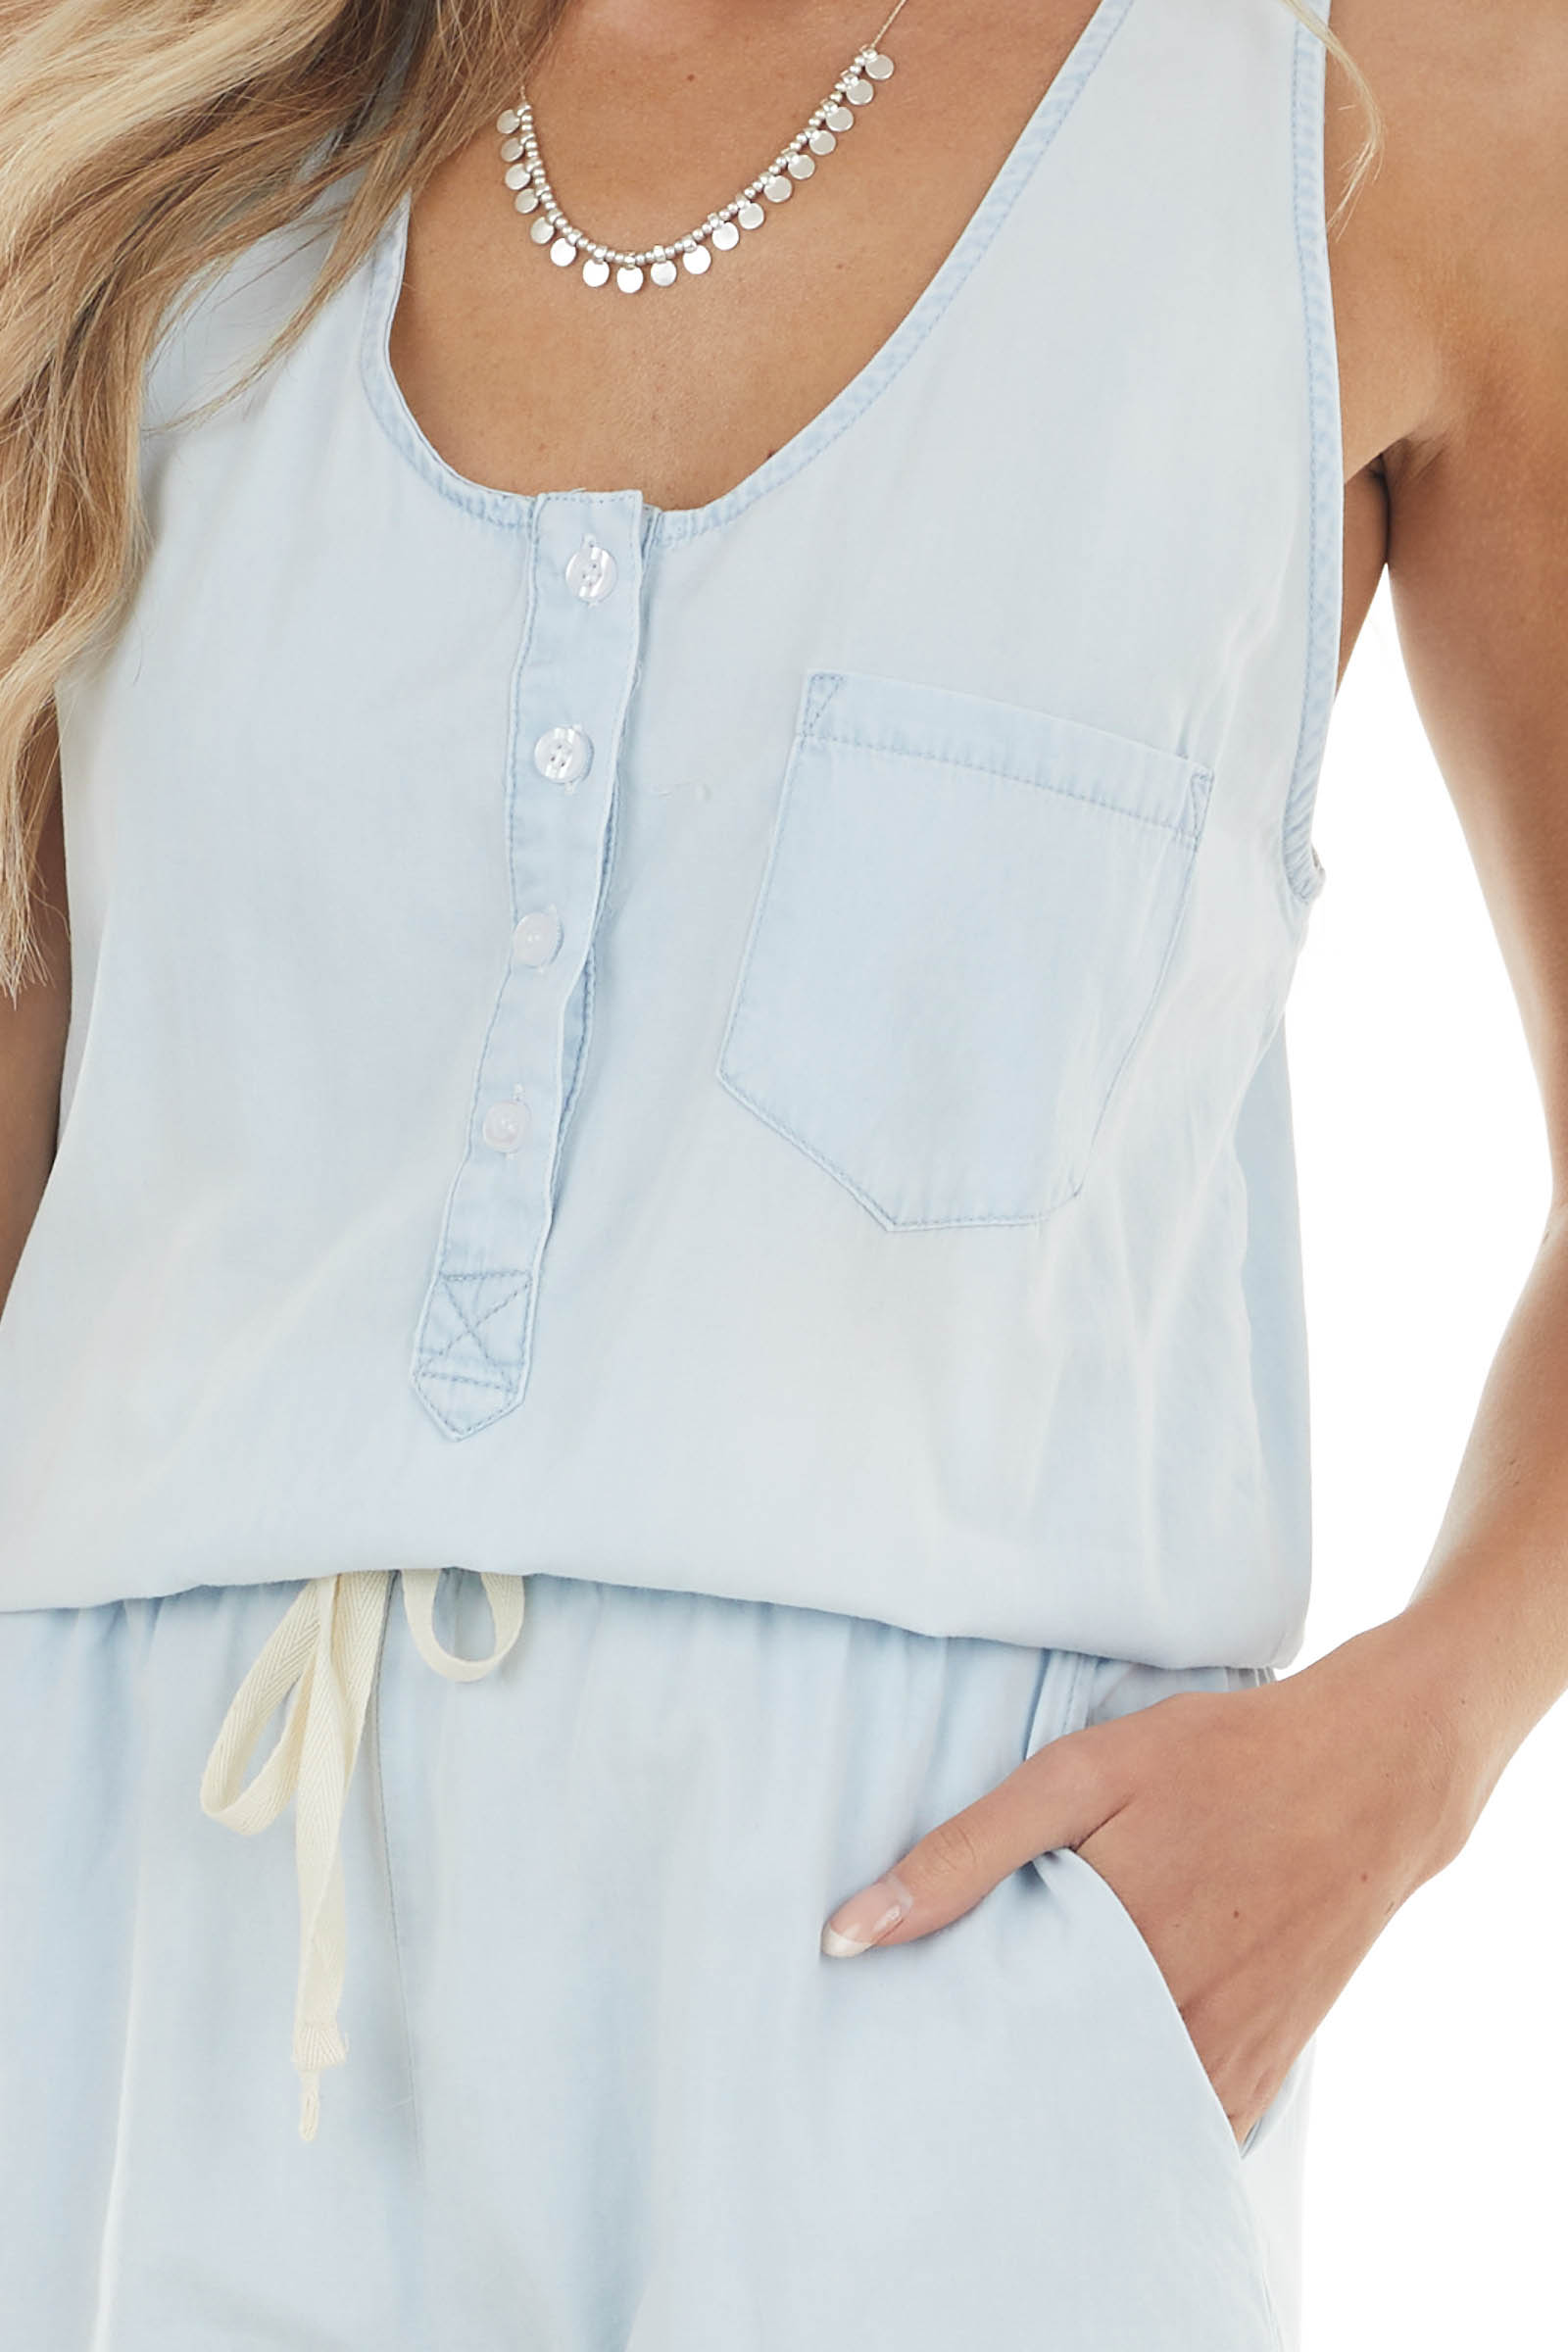 Pastel Blue Sleeveless Drawstring Romper with Side Pockets